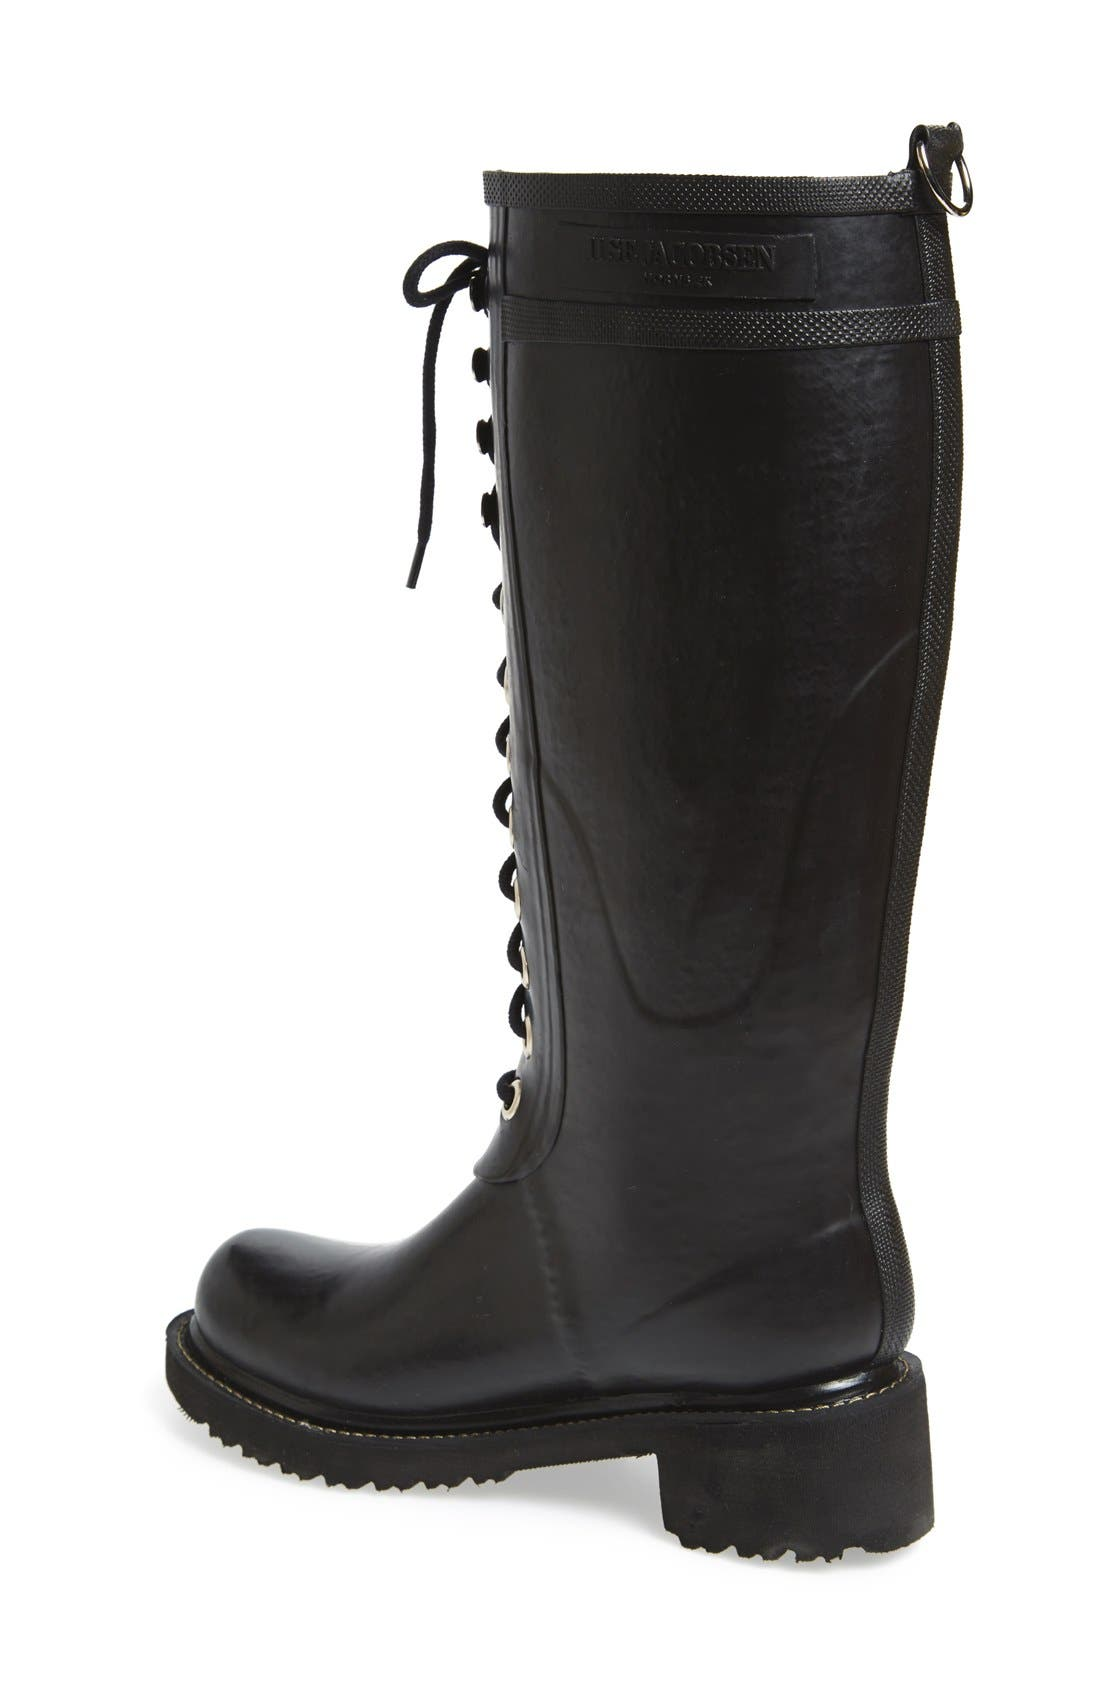 Waterproof Lace-Up Snow/Rain Boot,                             Alternate thumbnail 2, color,